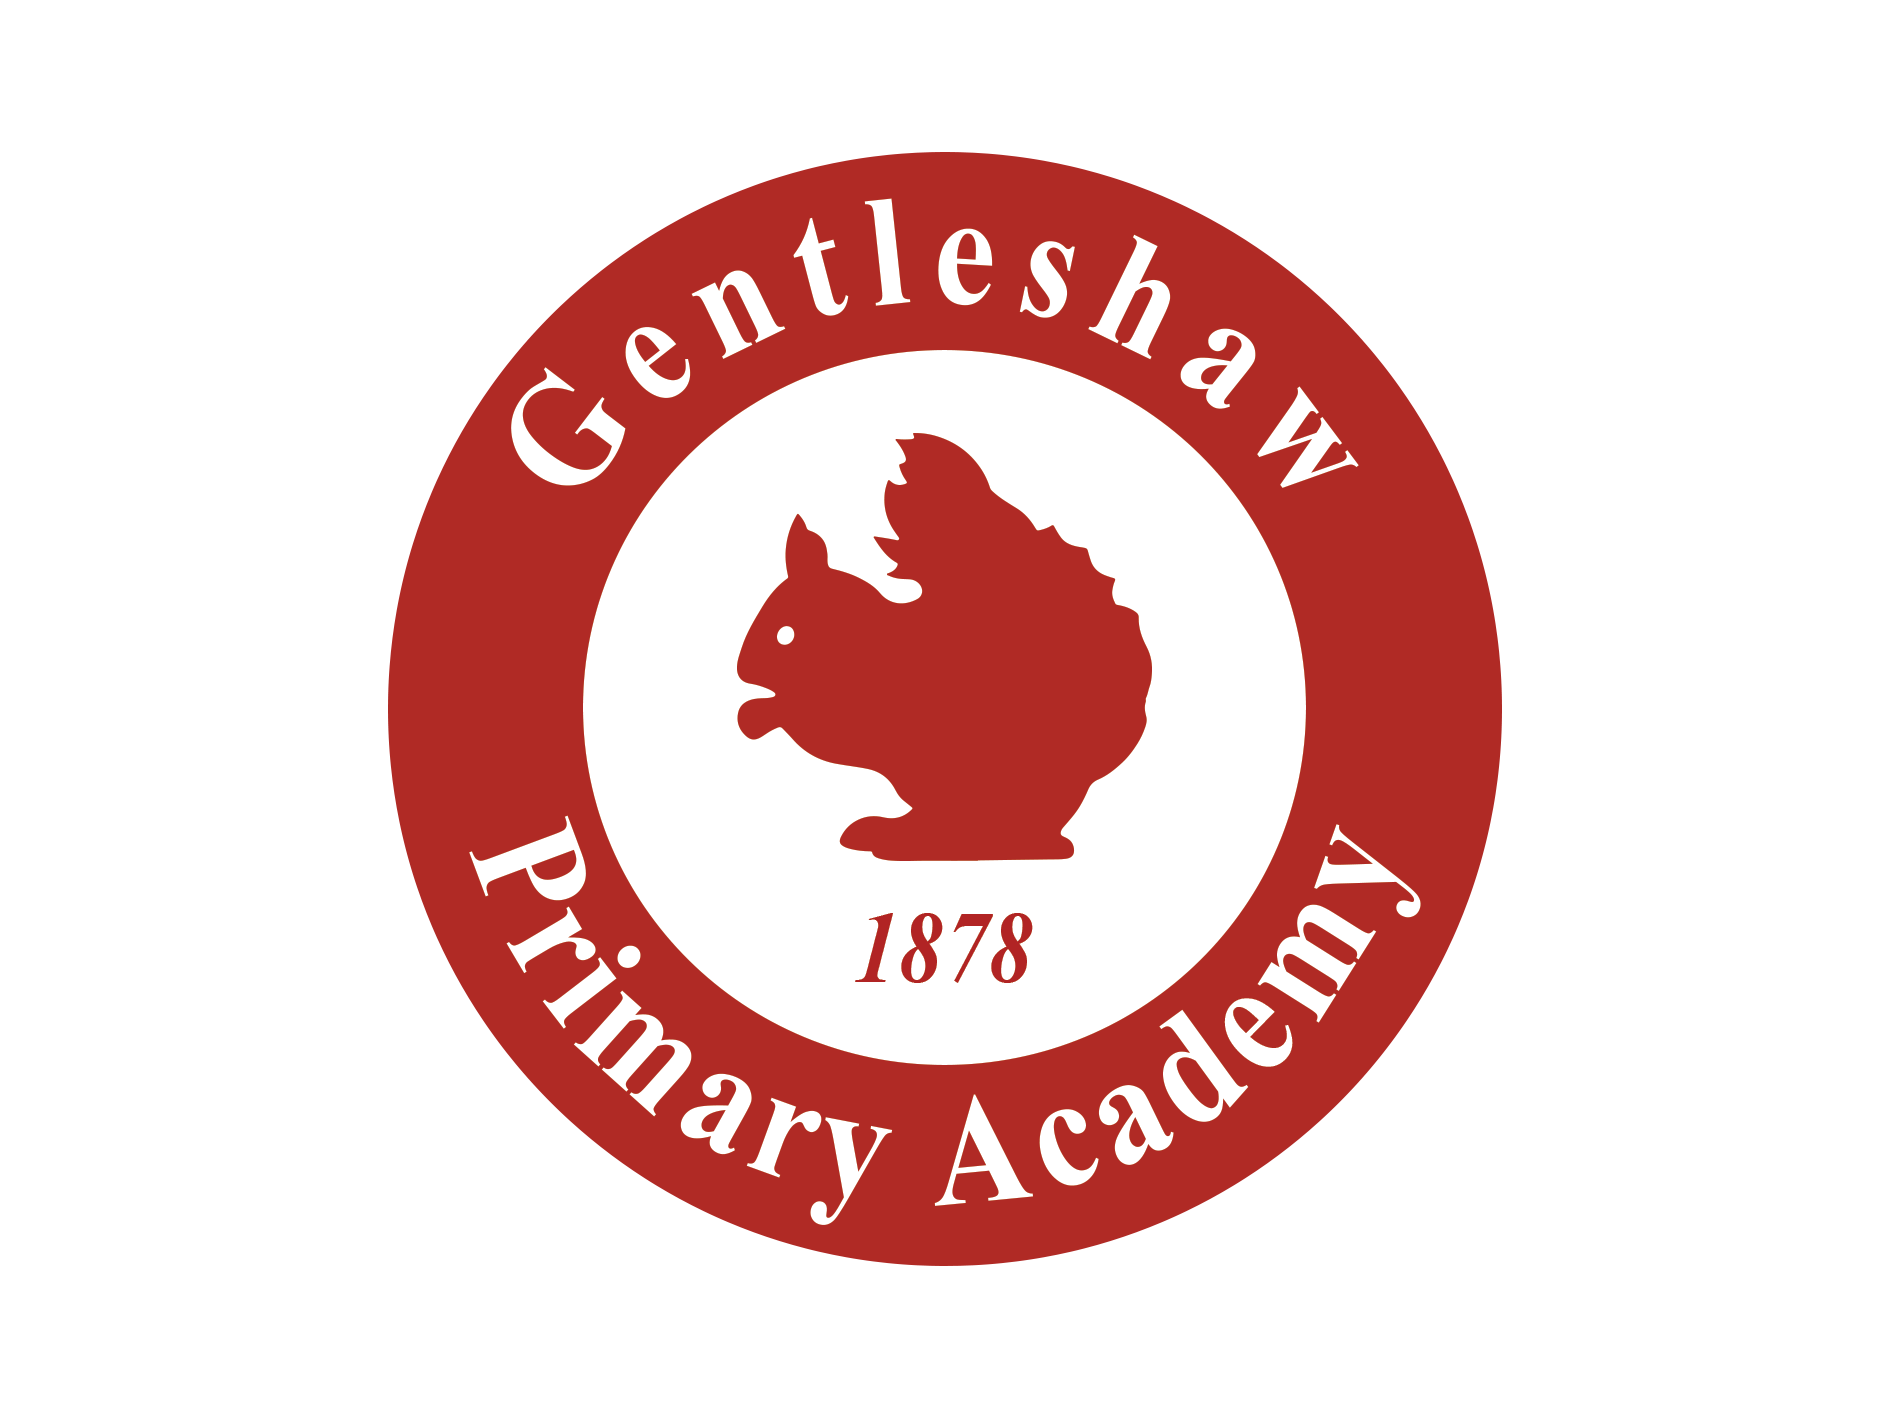 Gentleshaw-Primary-Academy-Logo-Red-BackgroundV5.png